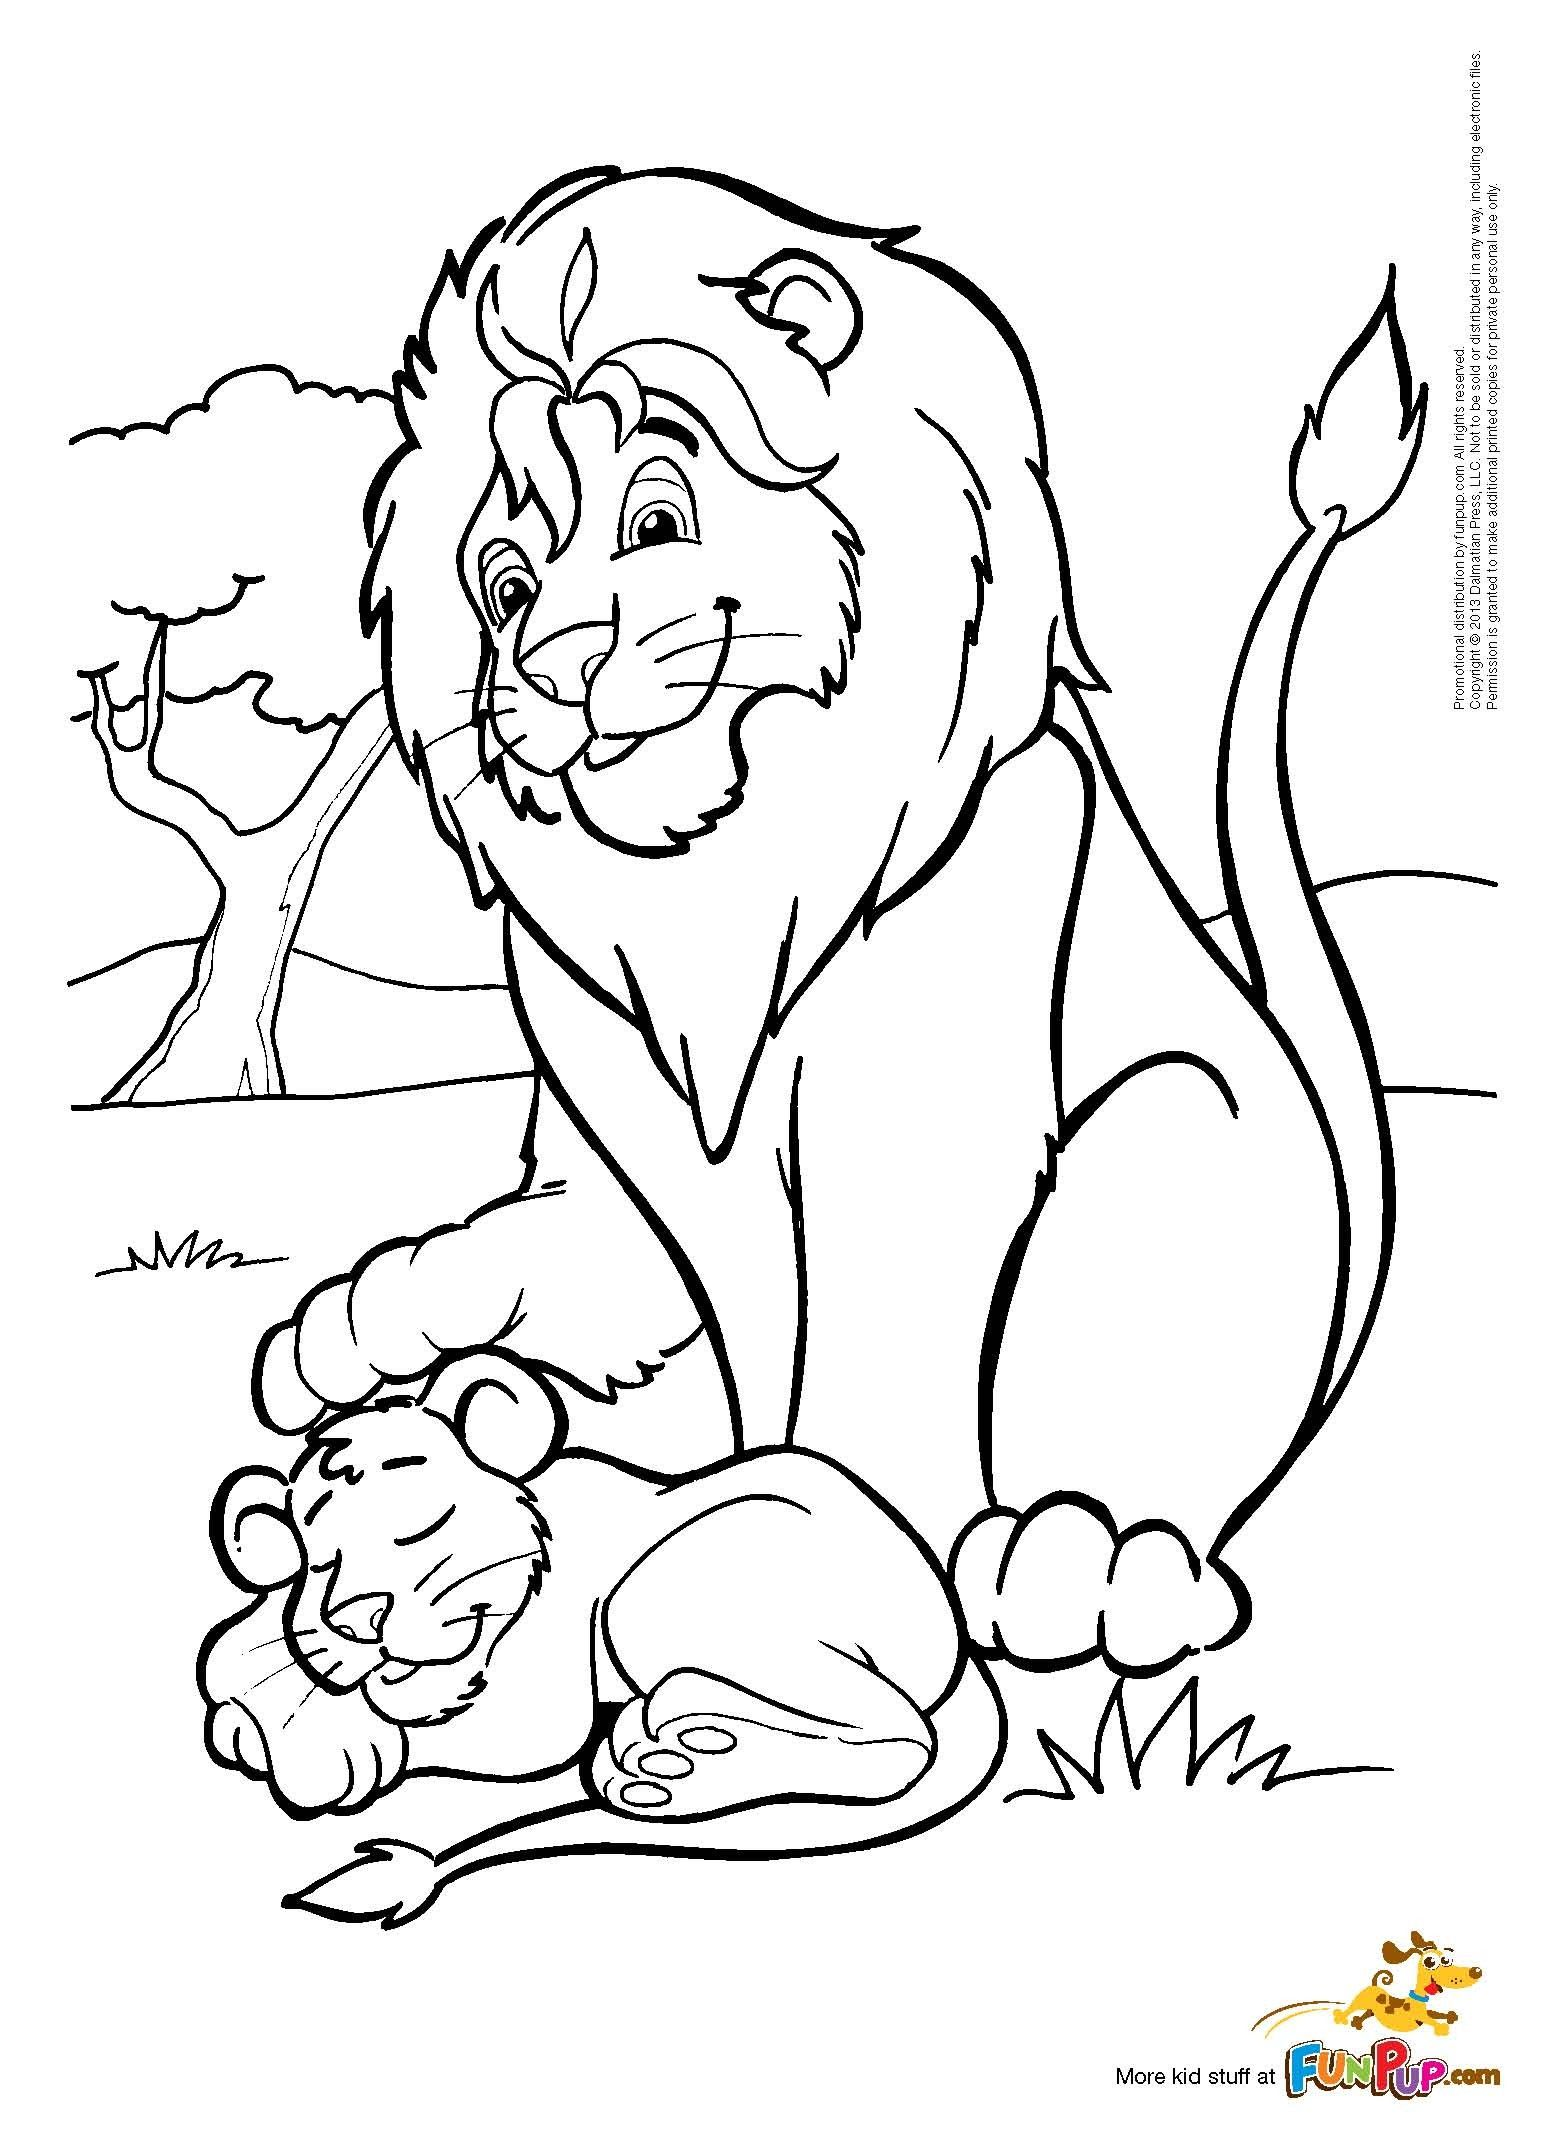 Father & Son Lion $0.00